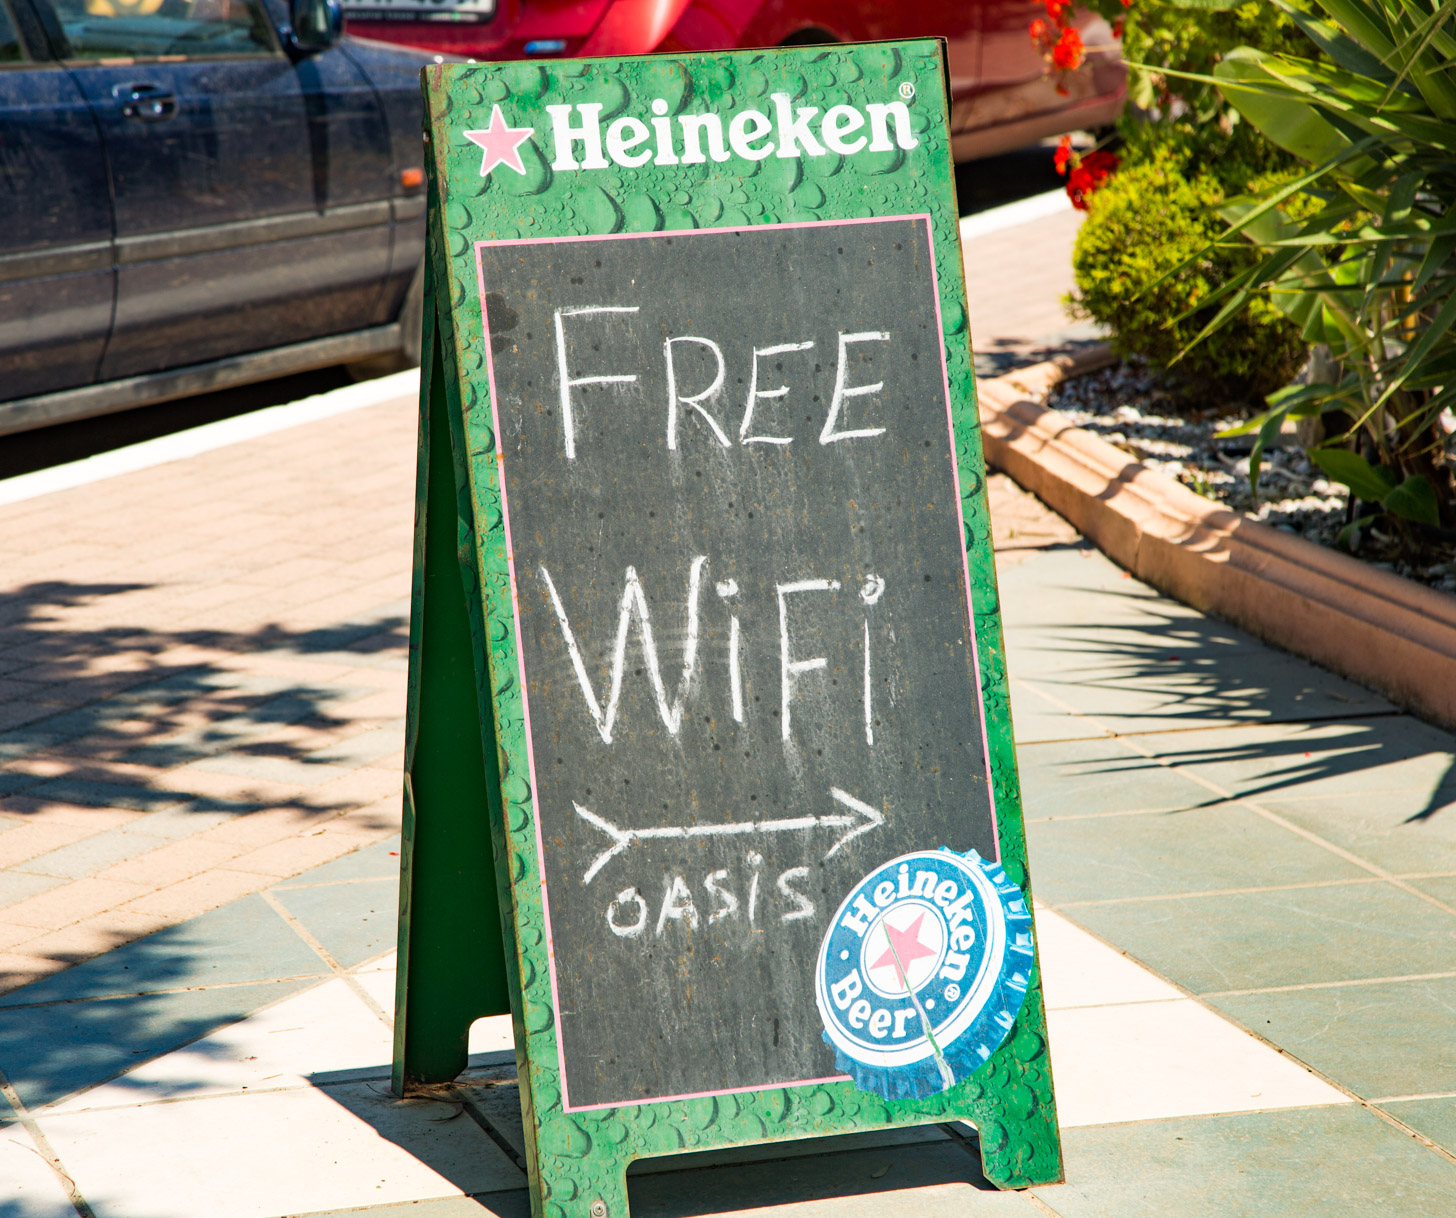 Gratis internet via wifi